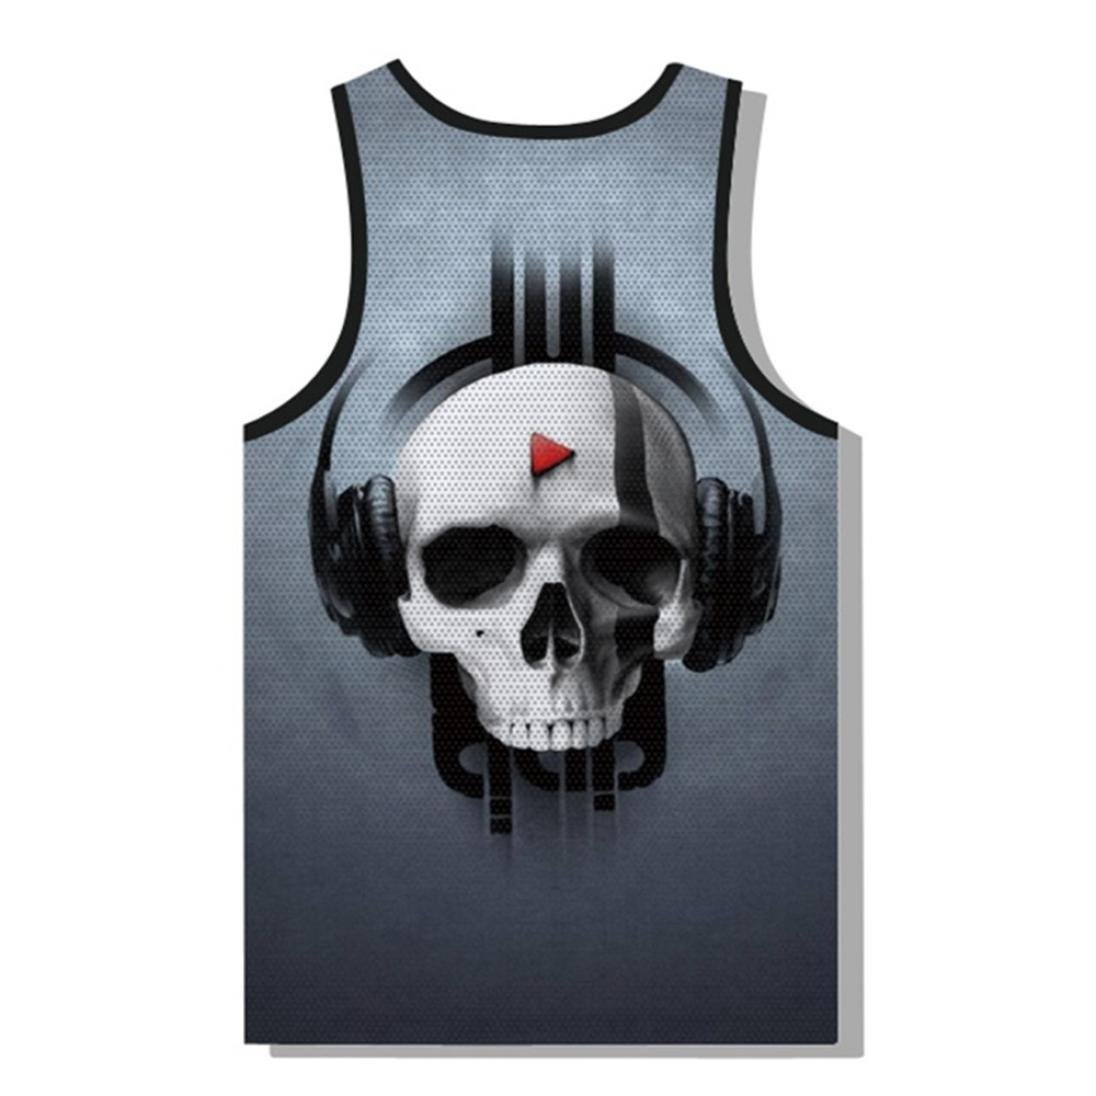 51f36e650bb95 Amazon.com  vermers Clearance Sale Men s Fashion Skull Tank Tops Summer  Casual 3D Printed Muscle Sleeveless Vest  Clothing